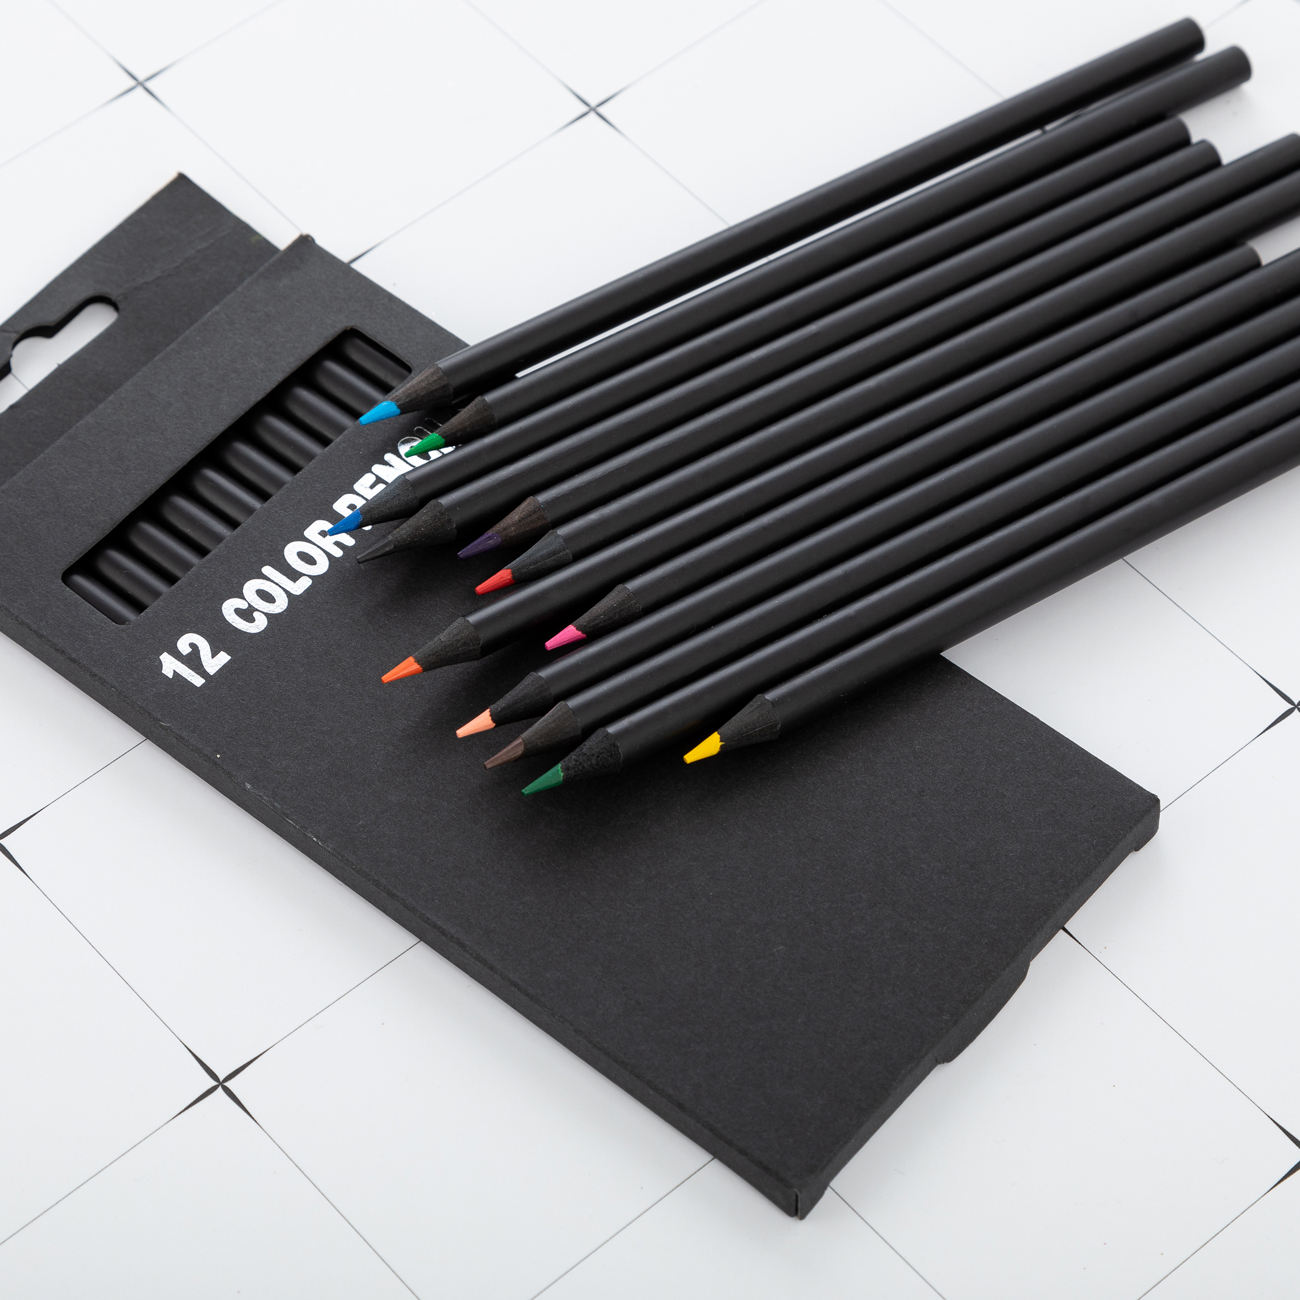 Promotion Custom logo printed Black wooden Multi-color pencil HB pencil